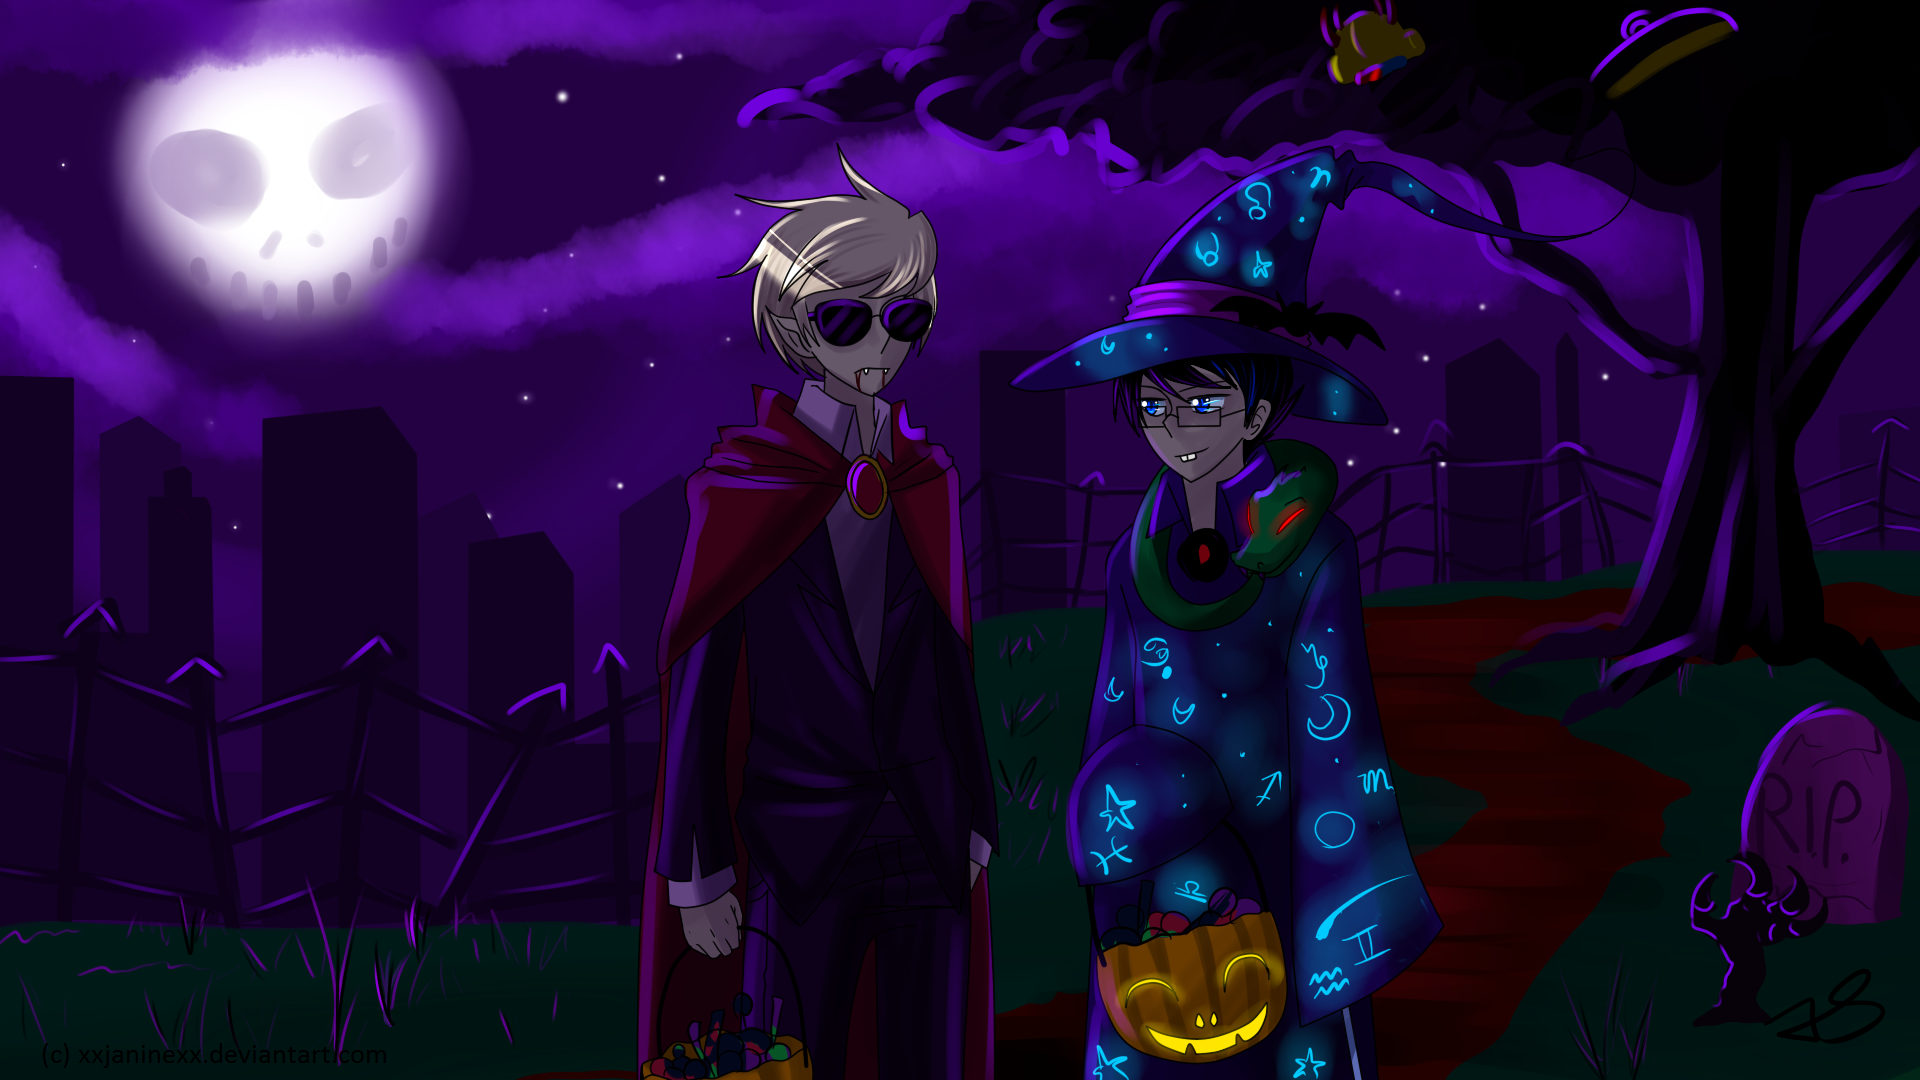 dave and john say happy halloween by timeless knight - Pictures That Say Happy Halloween